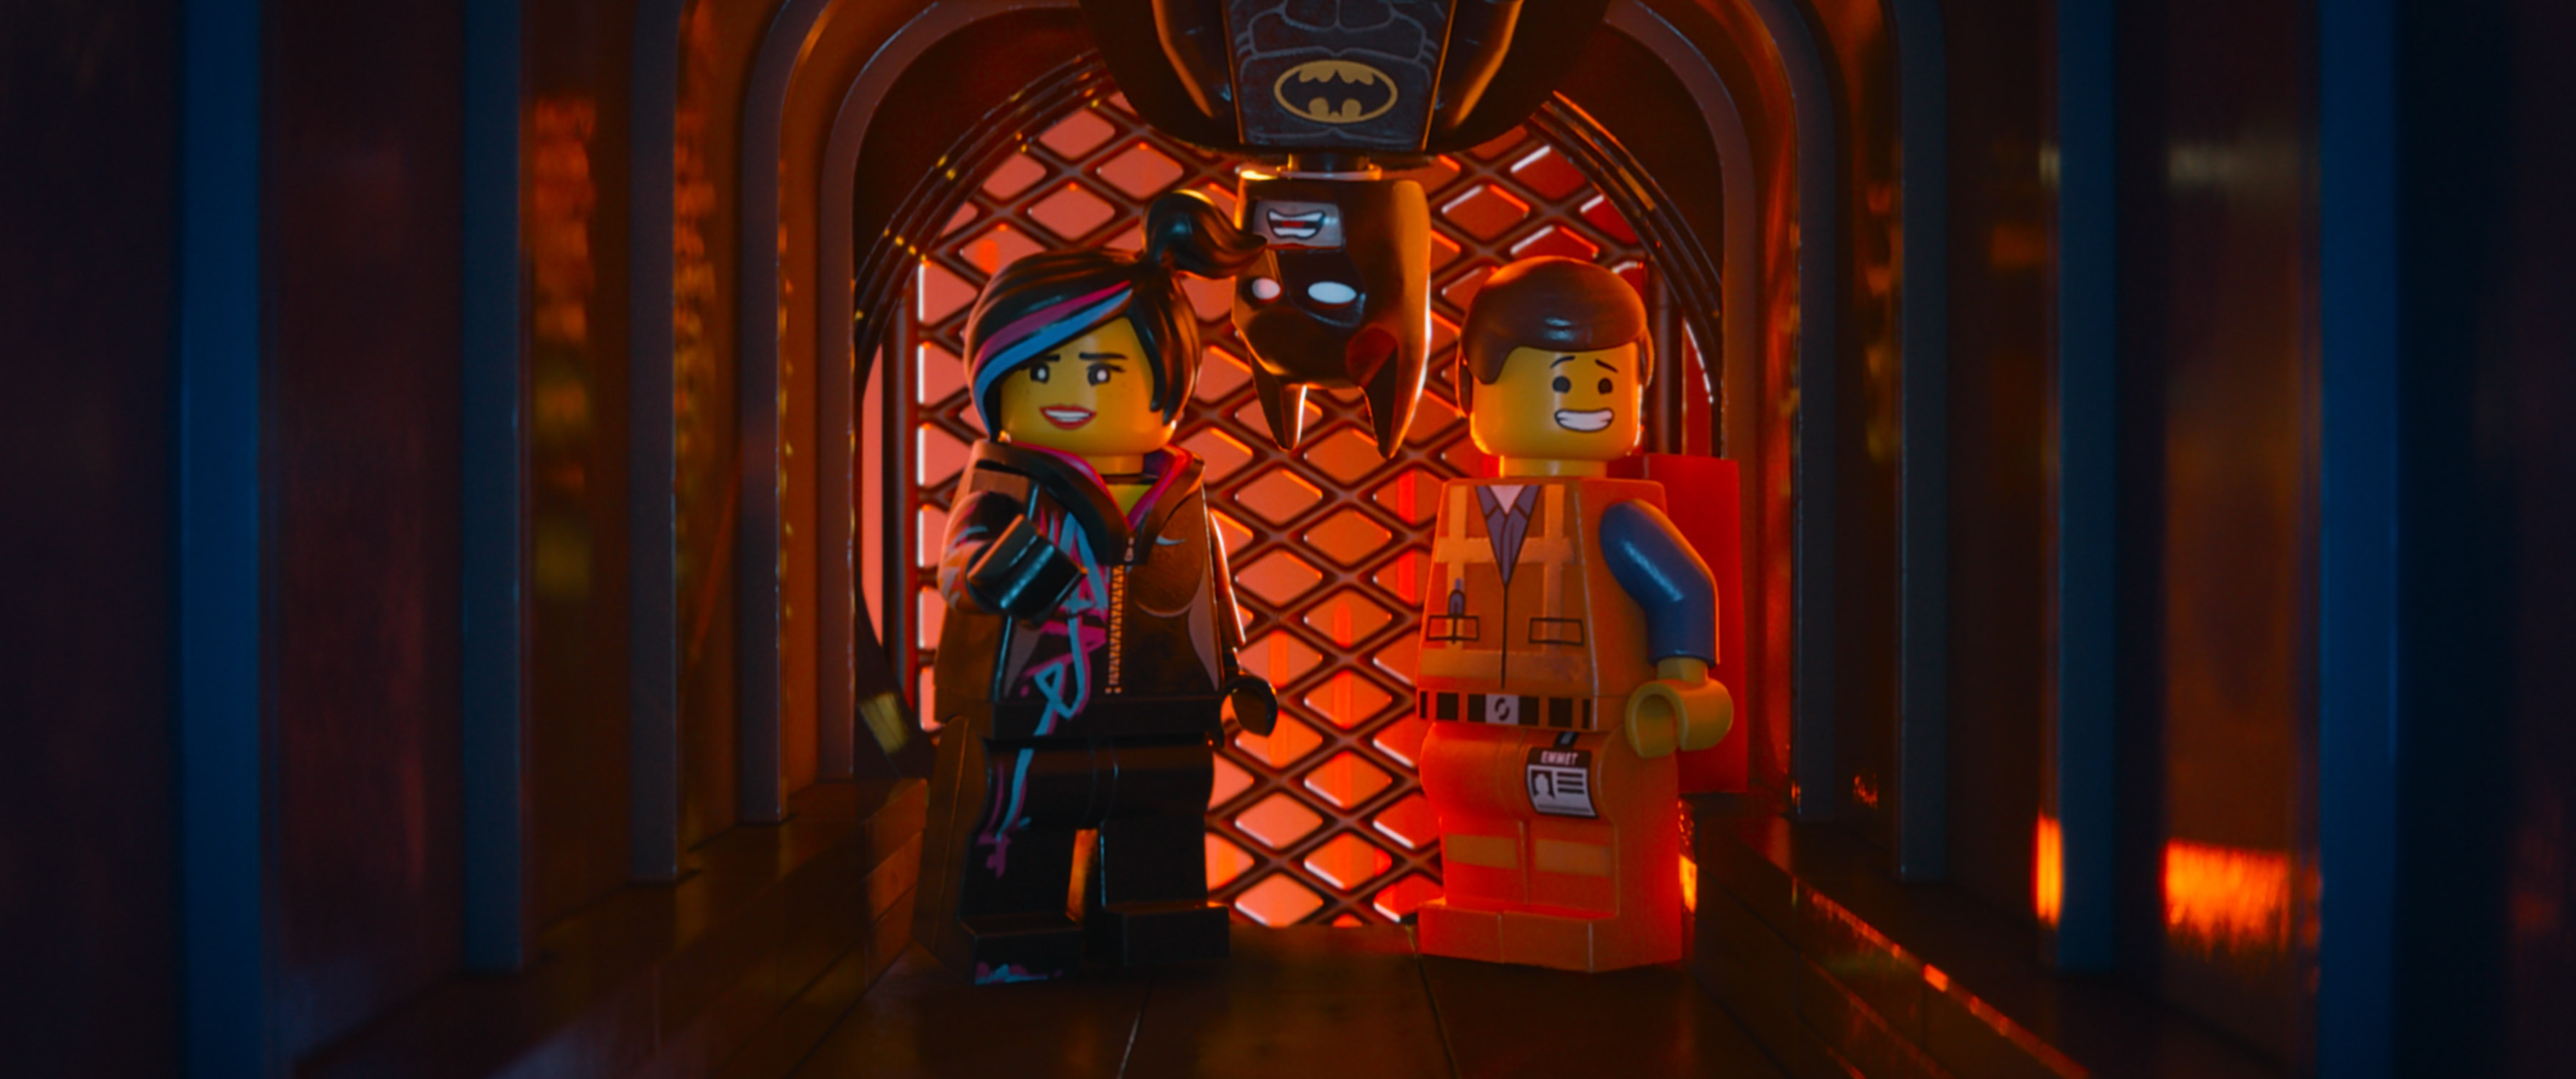 The-Lego-Movie-Warner-Bros-Collier.